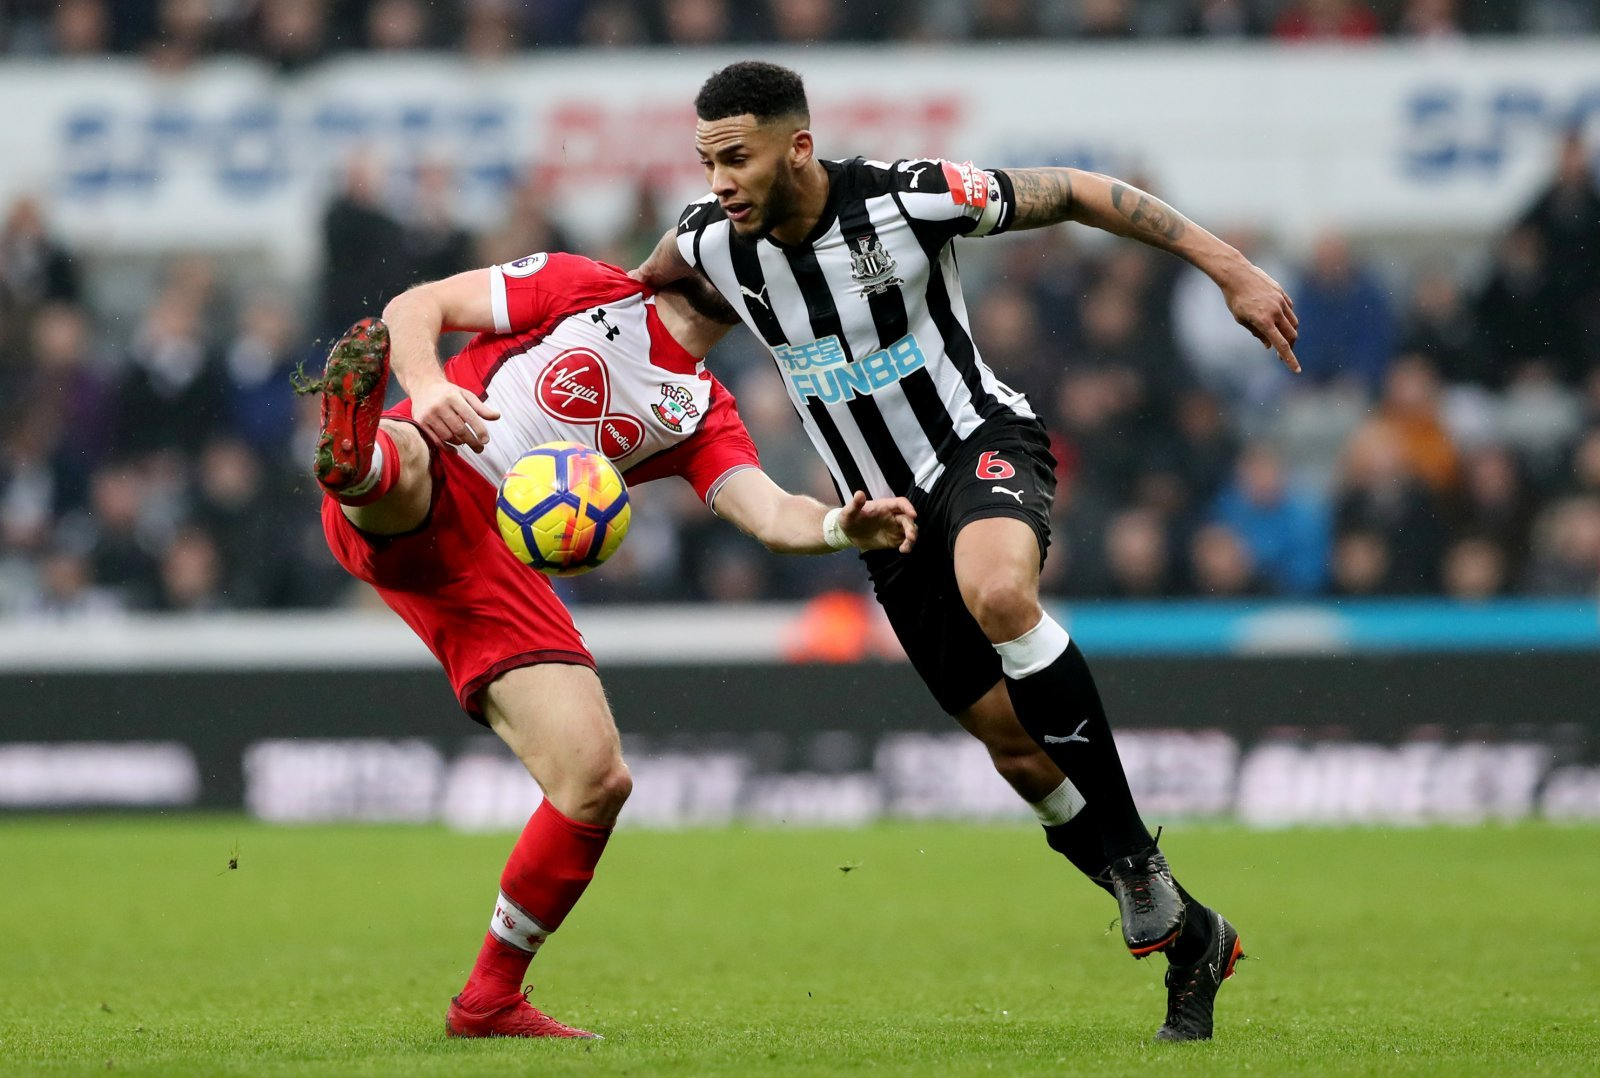 Lascelles would be a very smart Tottenham addition this summer